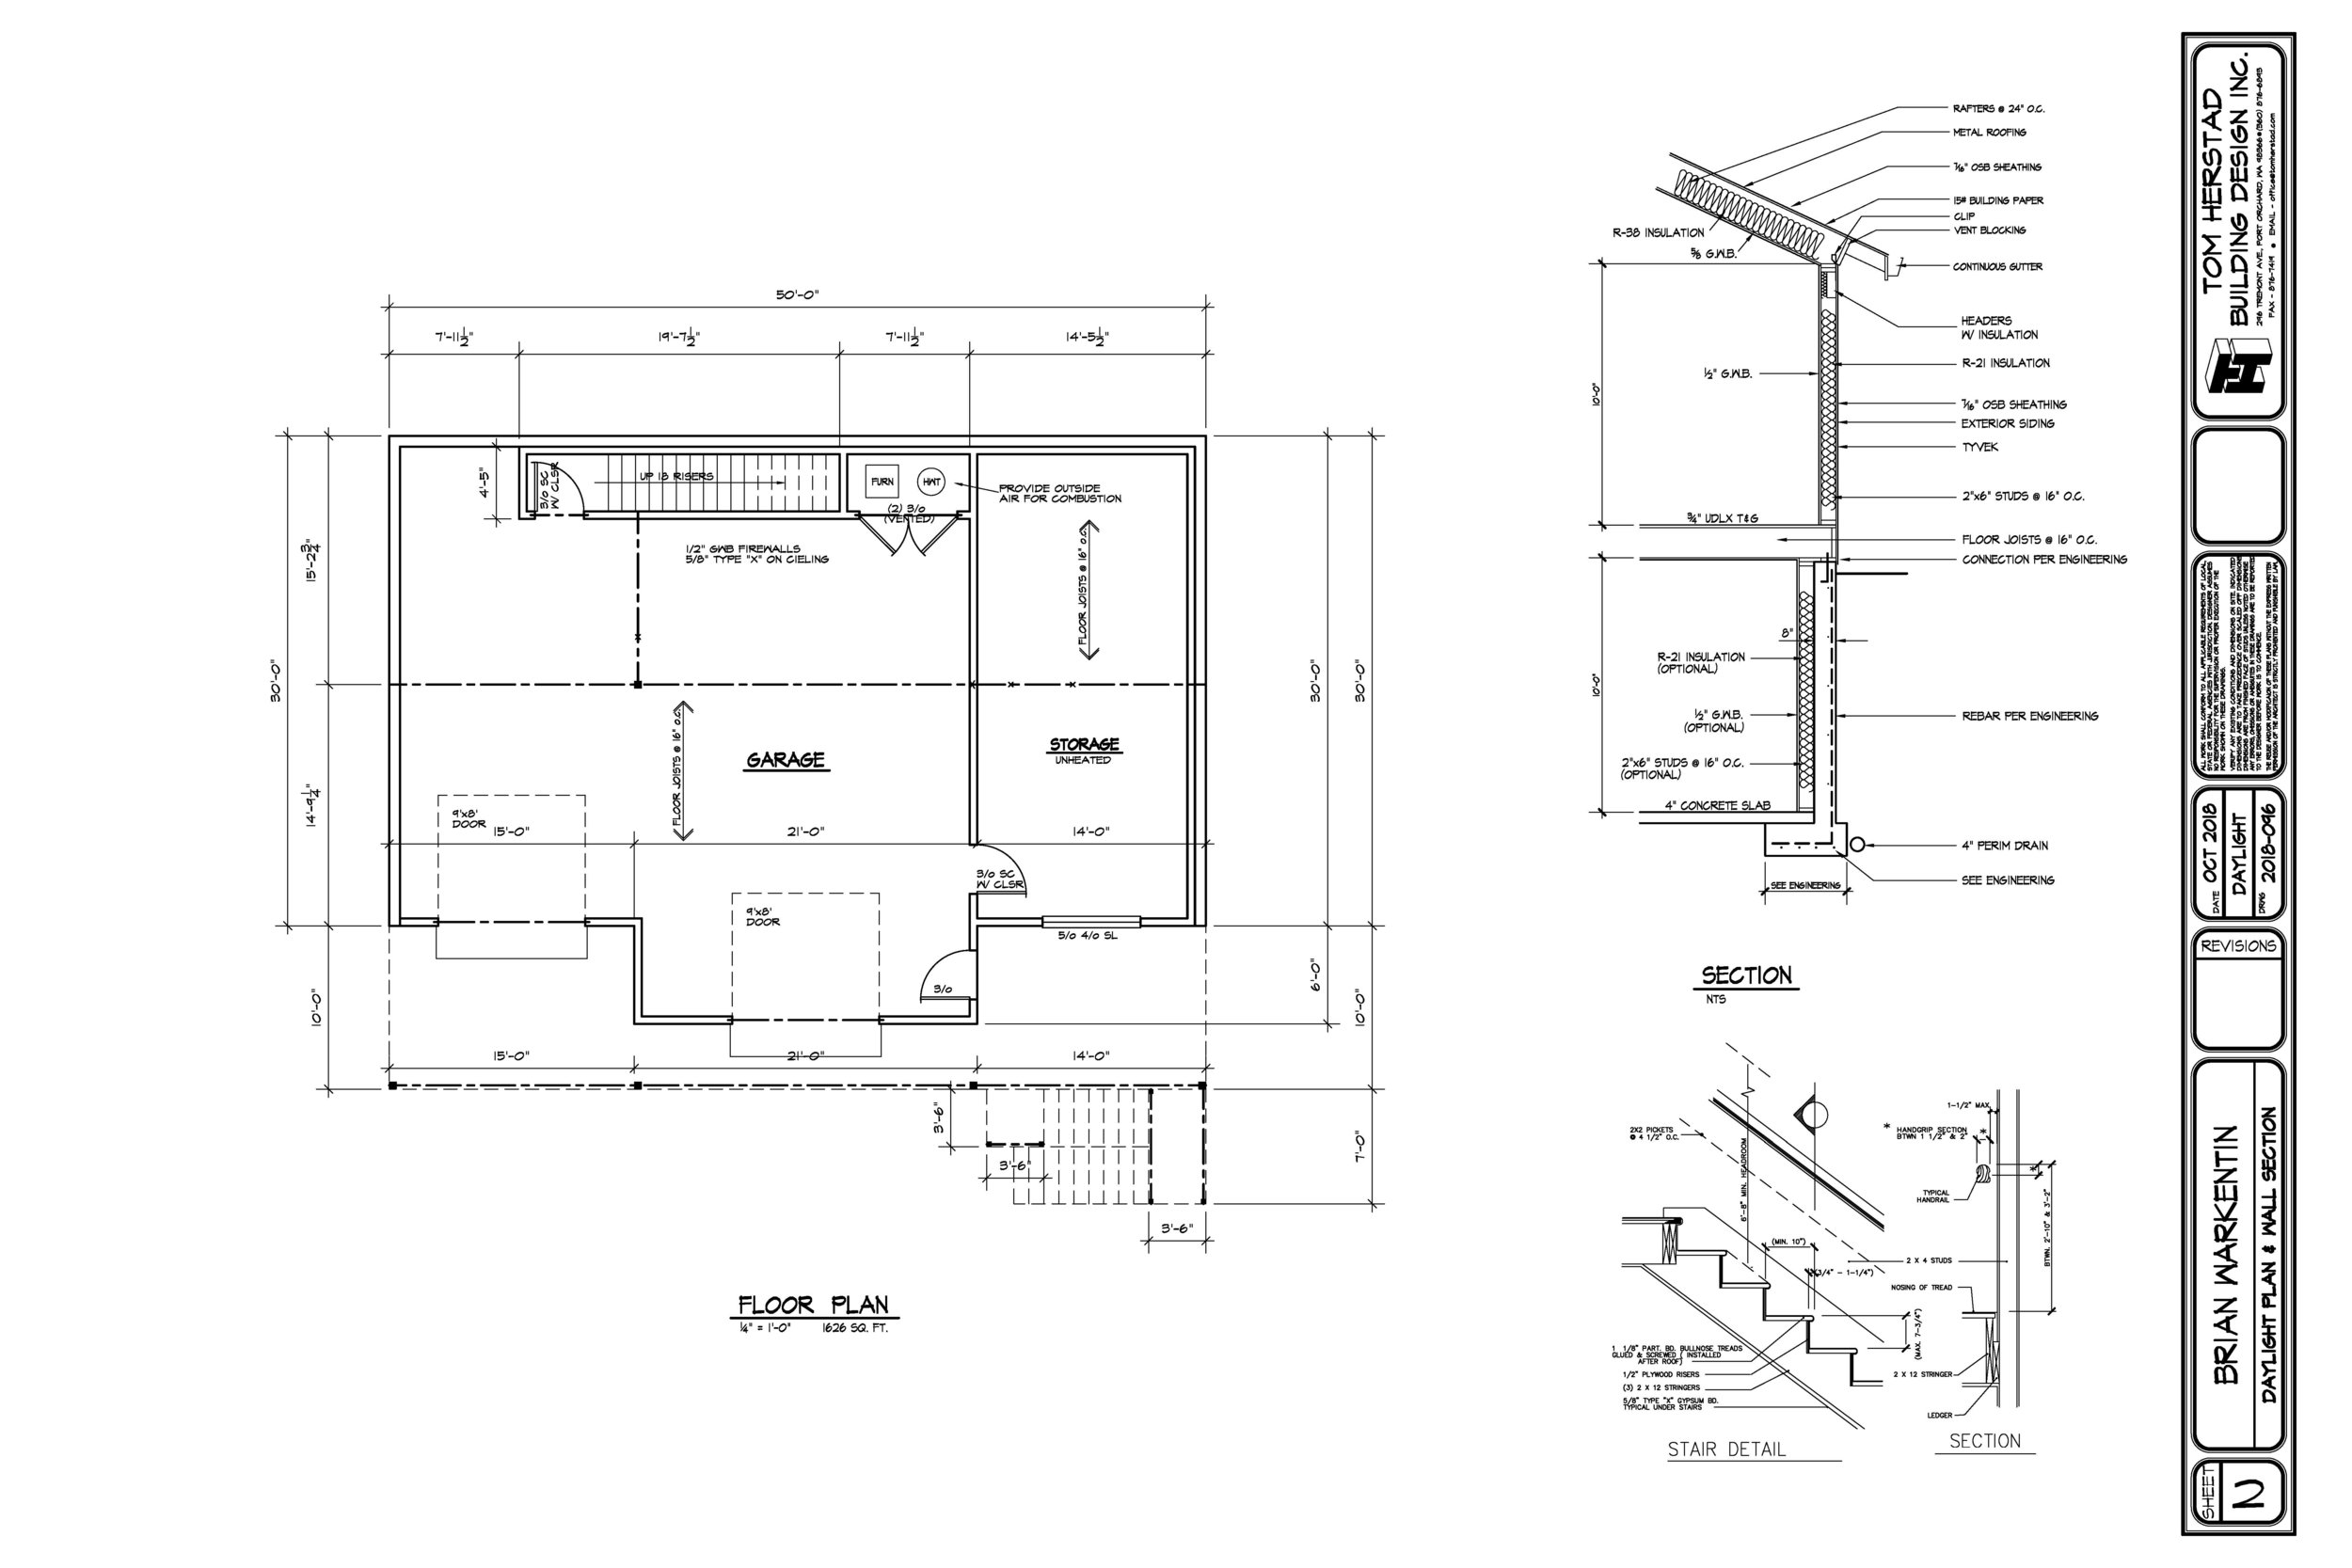 1840 Lawrence St Plans_Page_2.jpg